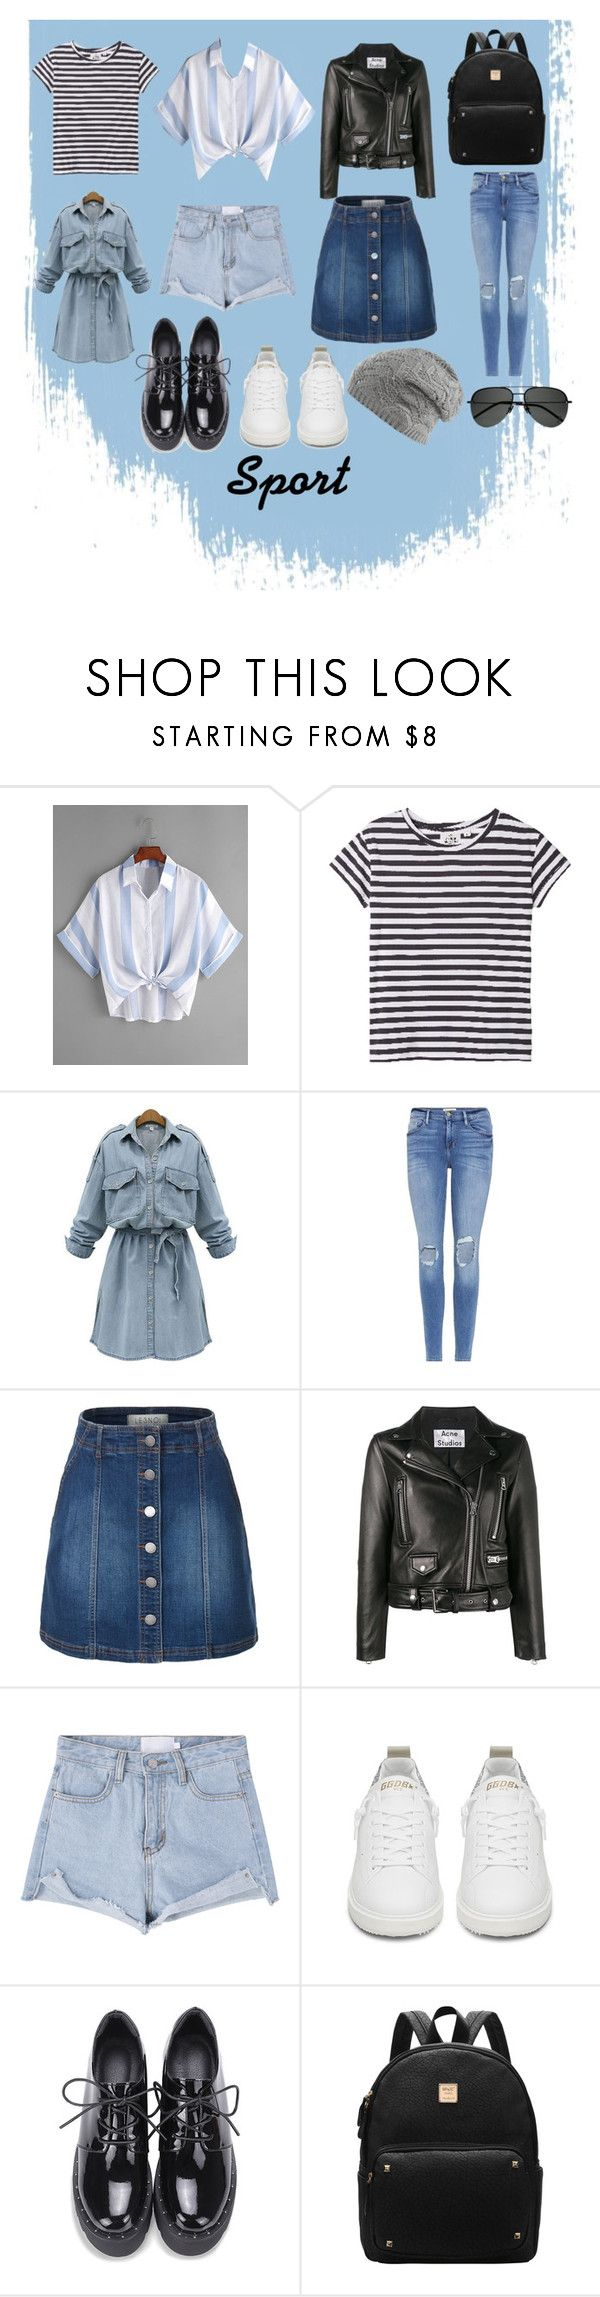 летняя капсула by darina-kallina on Polyvore featuring мода, WithChic, Cheap Monday, Acne Studios, LE3NO, Frame, Golden Goose and Yves Saint Laurent